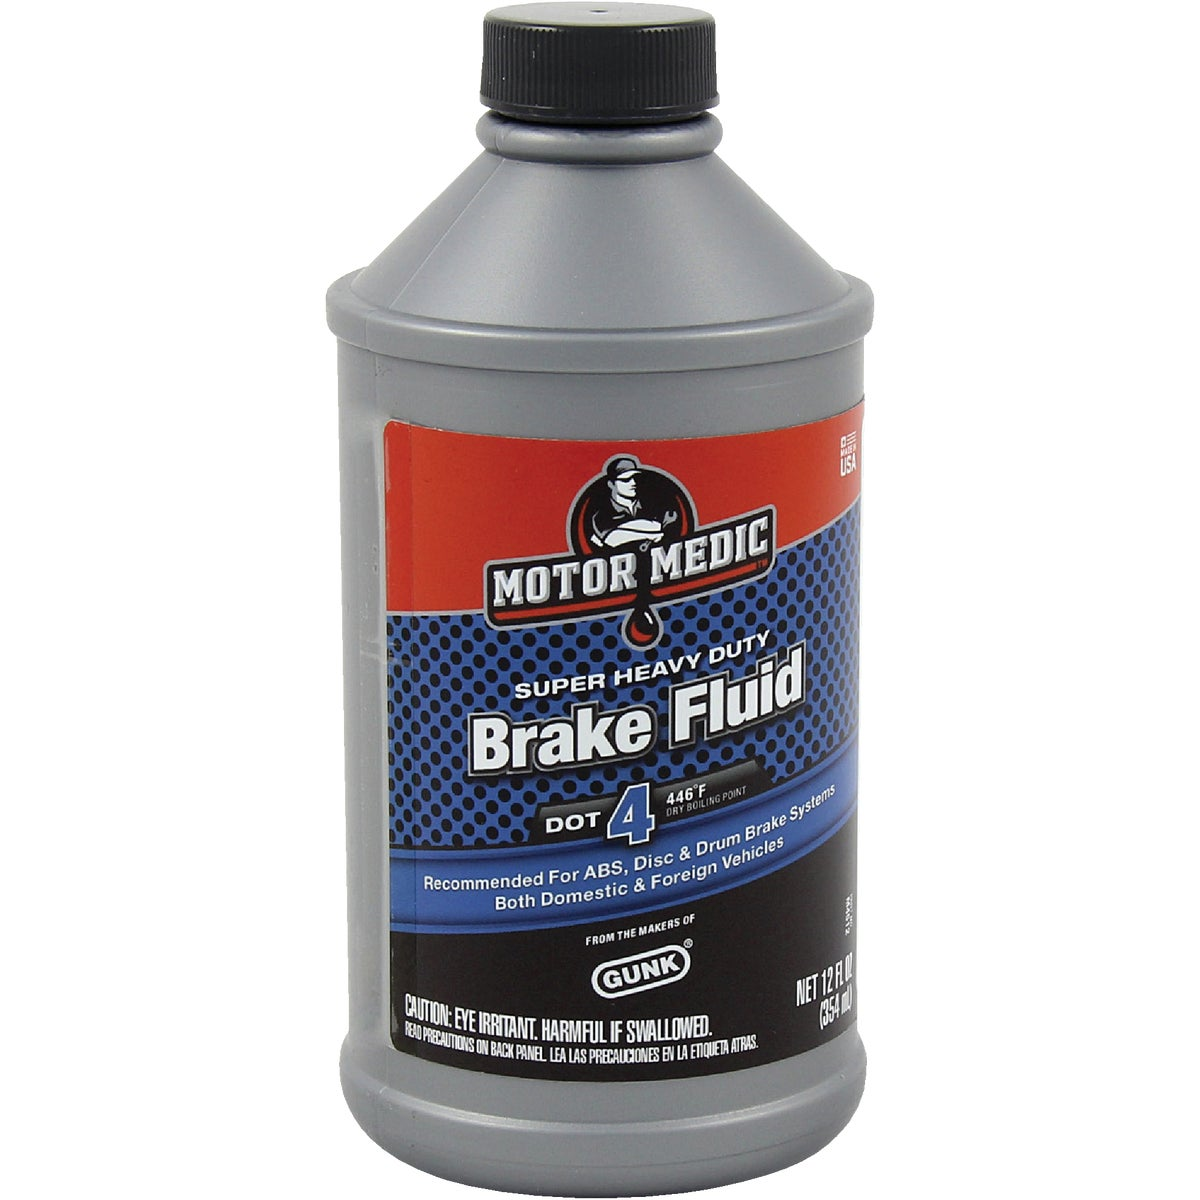 12OZ BRAKE FLUID - M4512/6 by Radiator Specialty